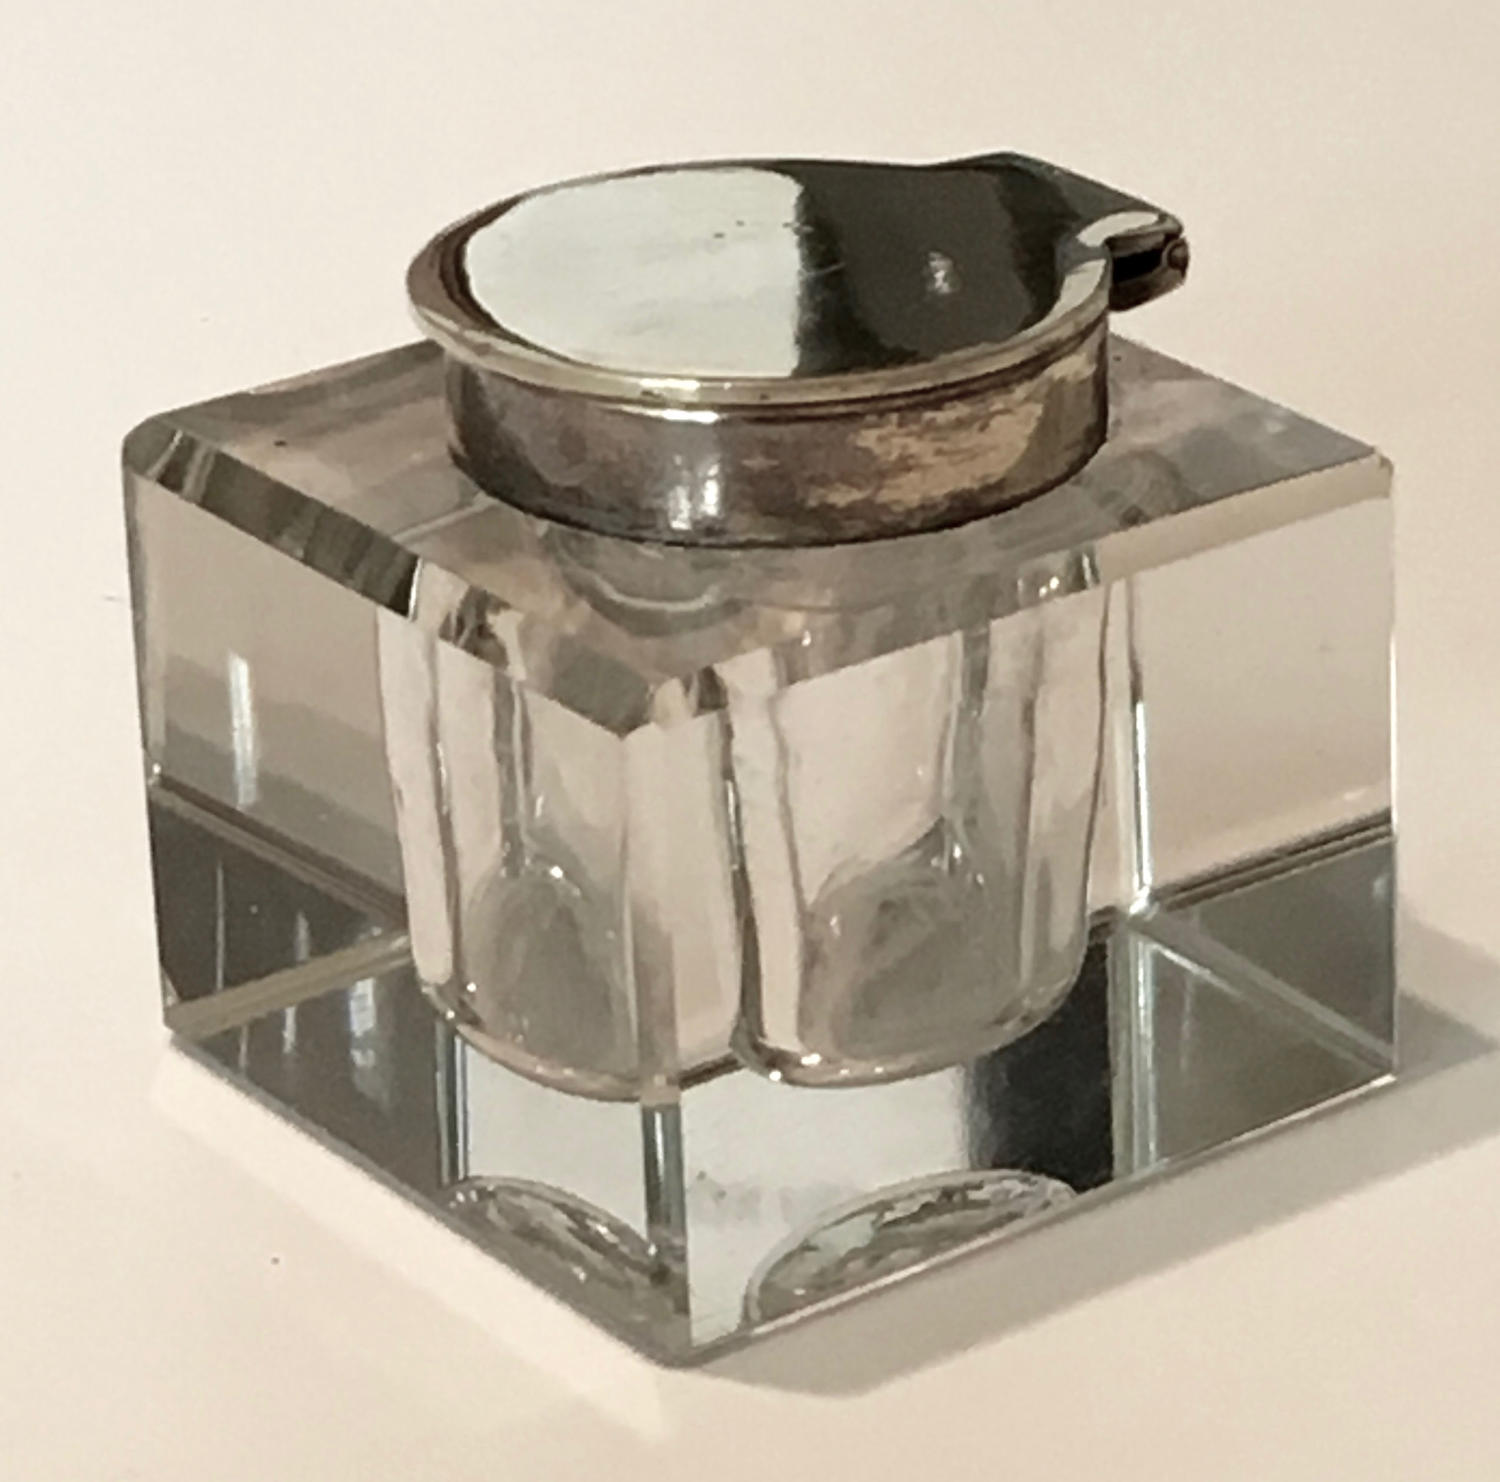 Edwardian glass inkwell